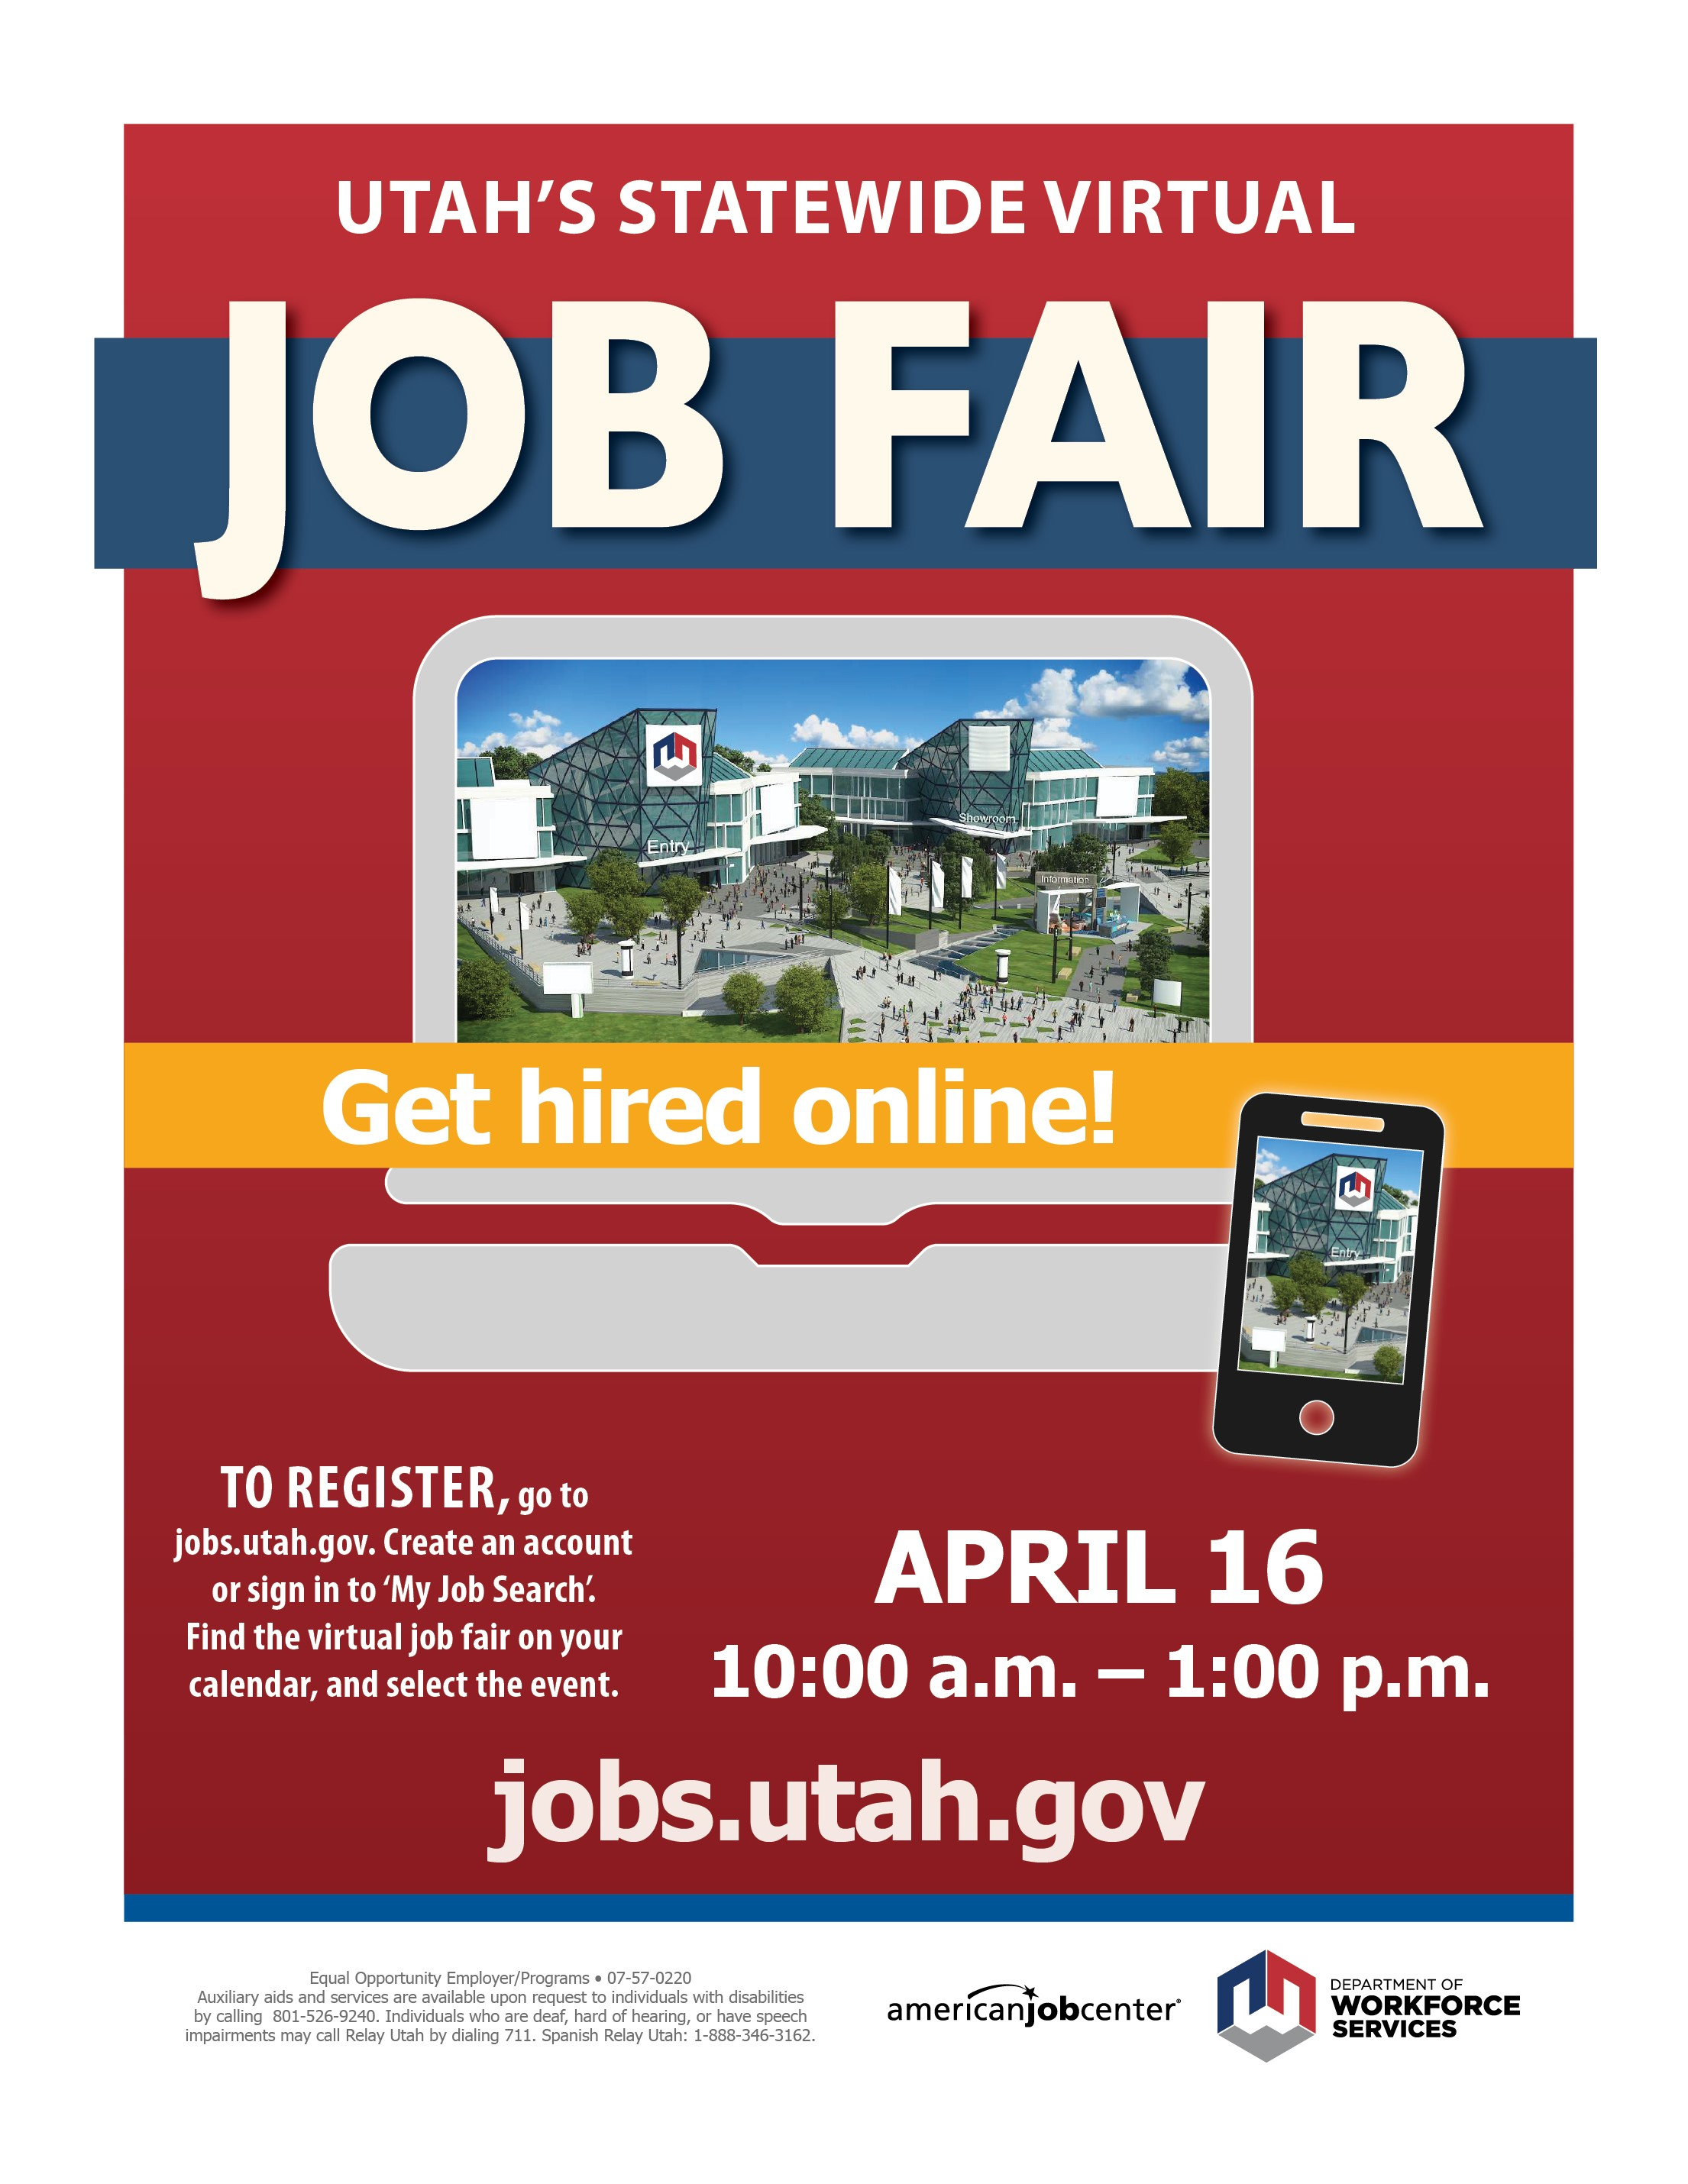 Utah's Statewide Virtual JOB FAIR @ https://jobs.utah.gov/